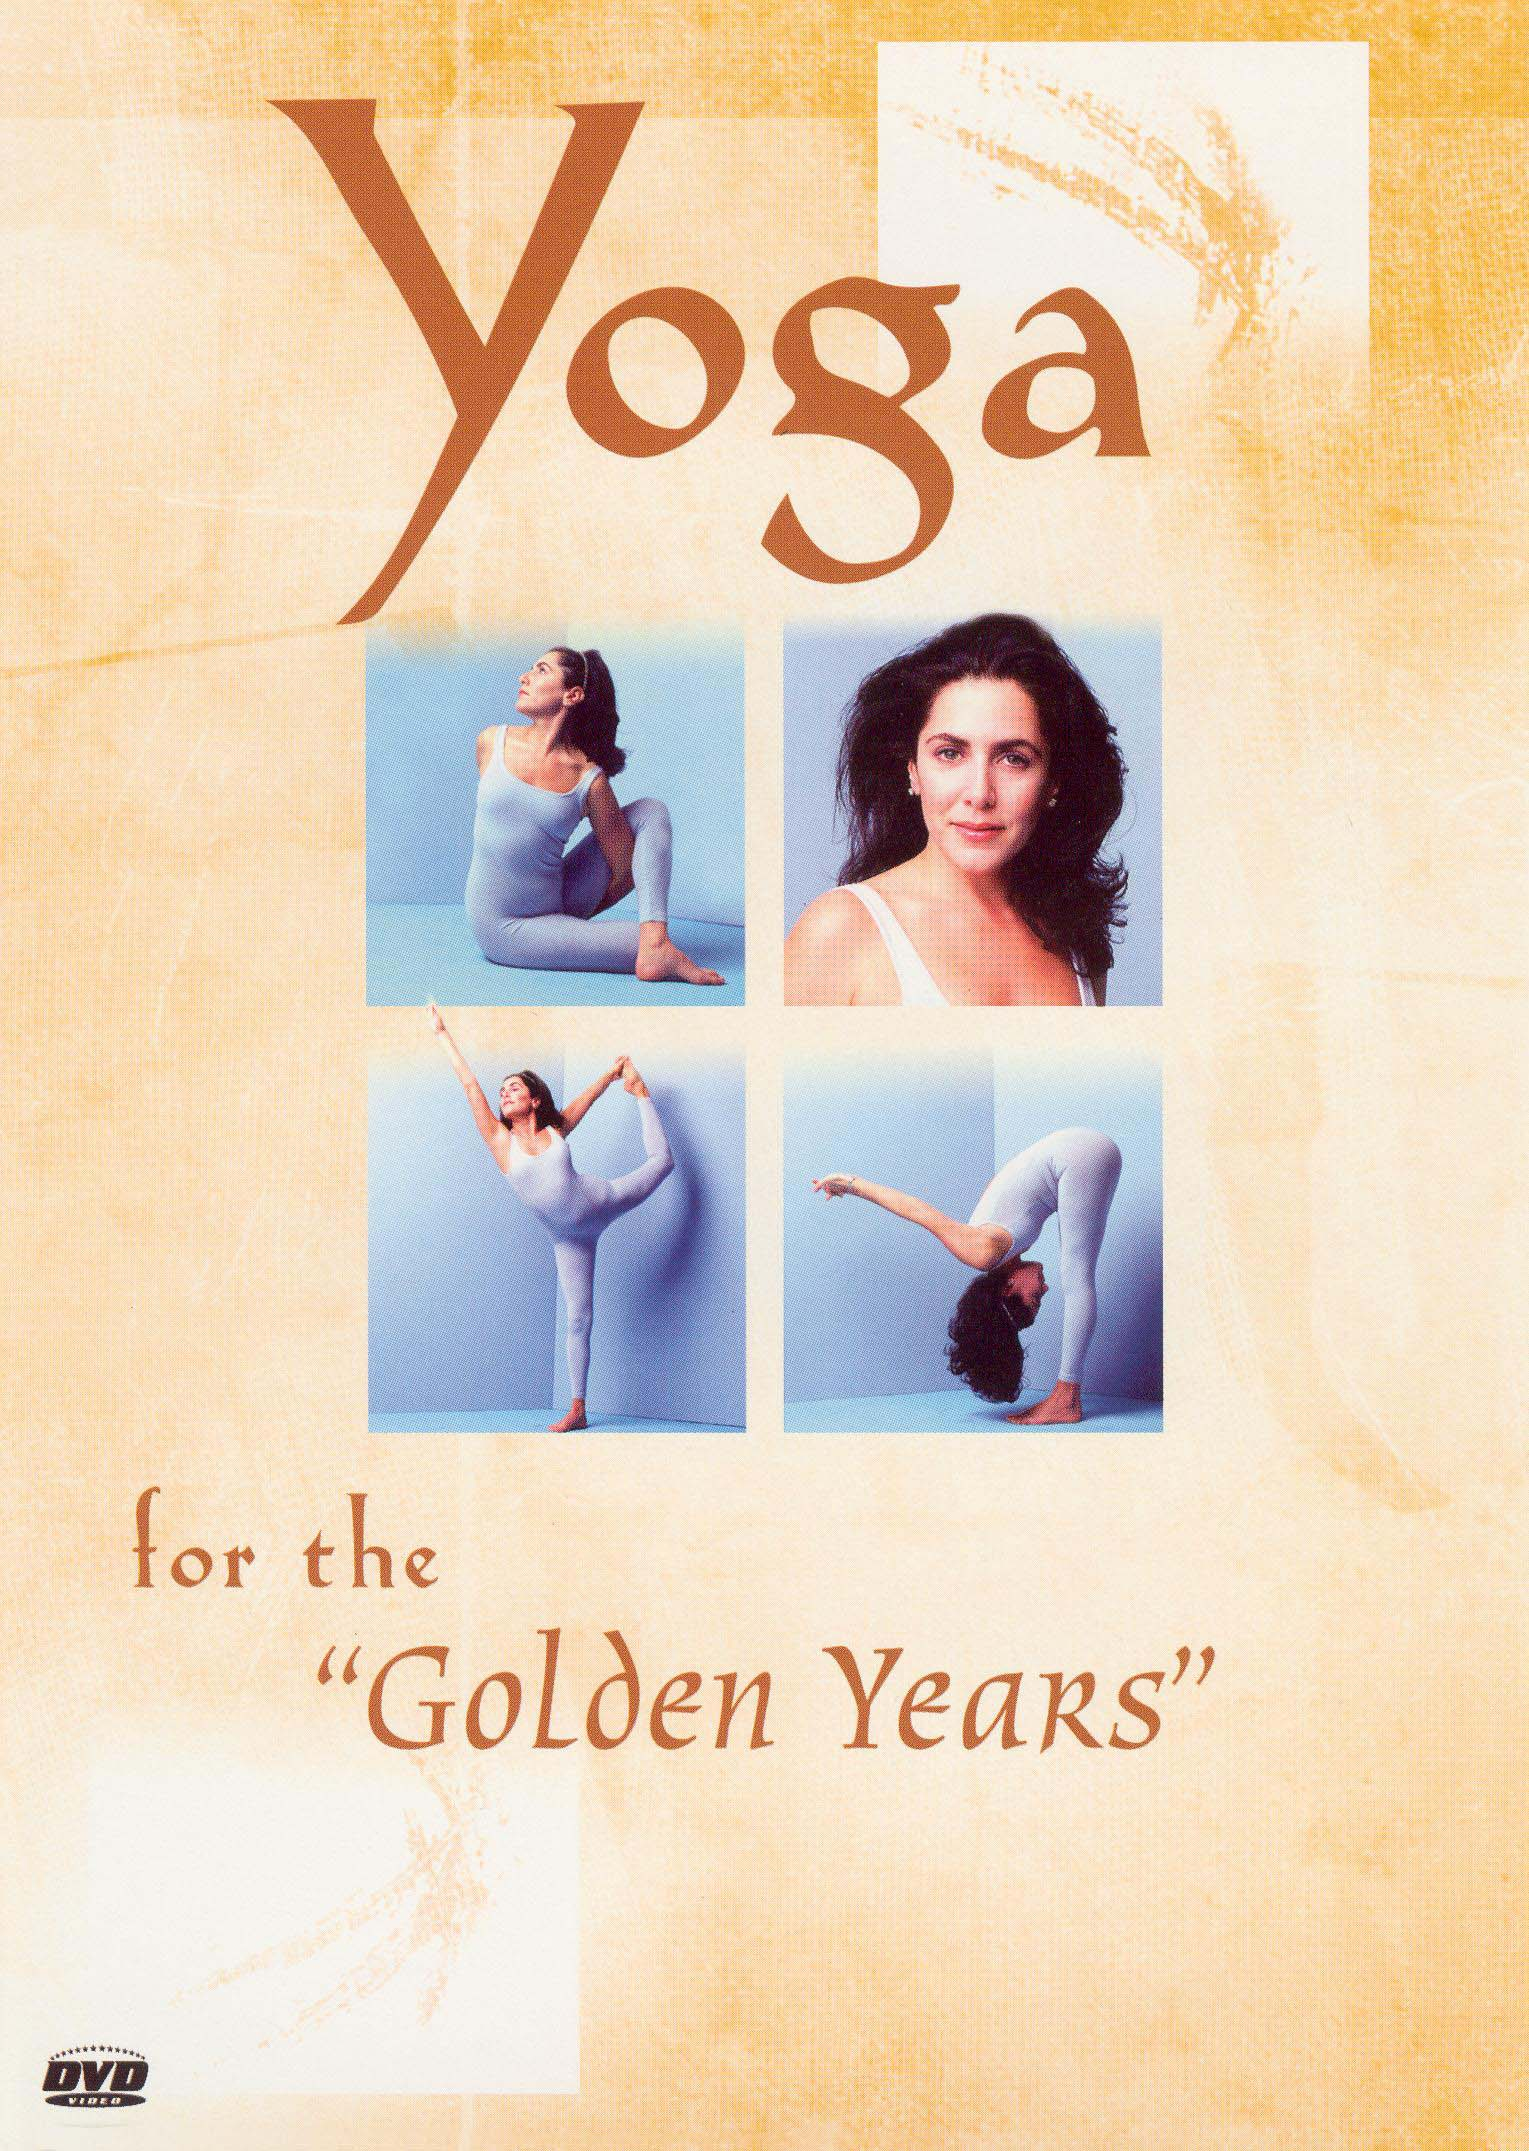 Yoga for the Golden Years